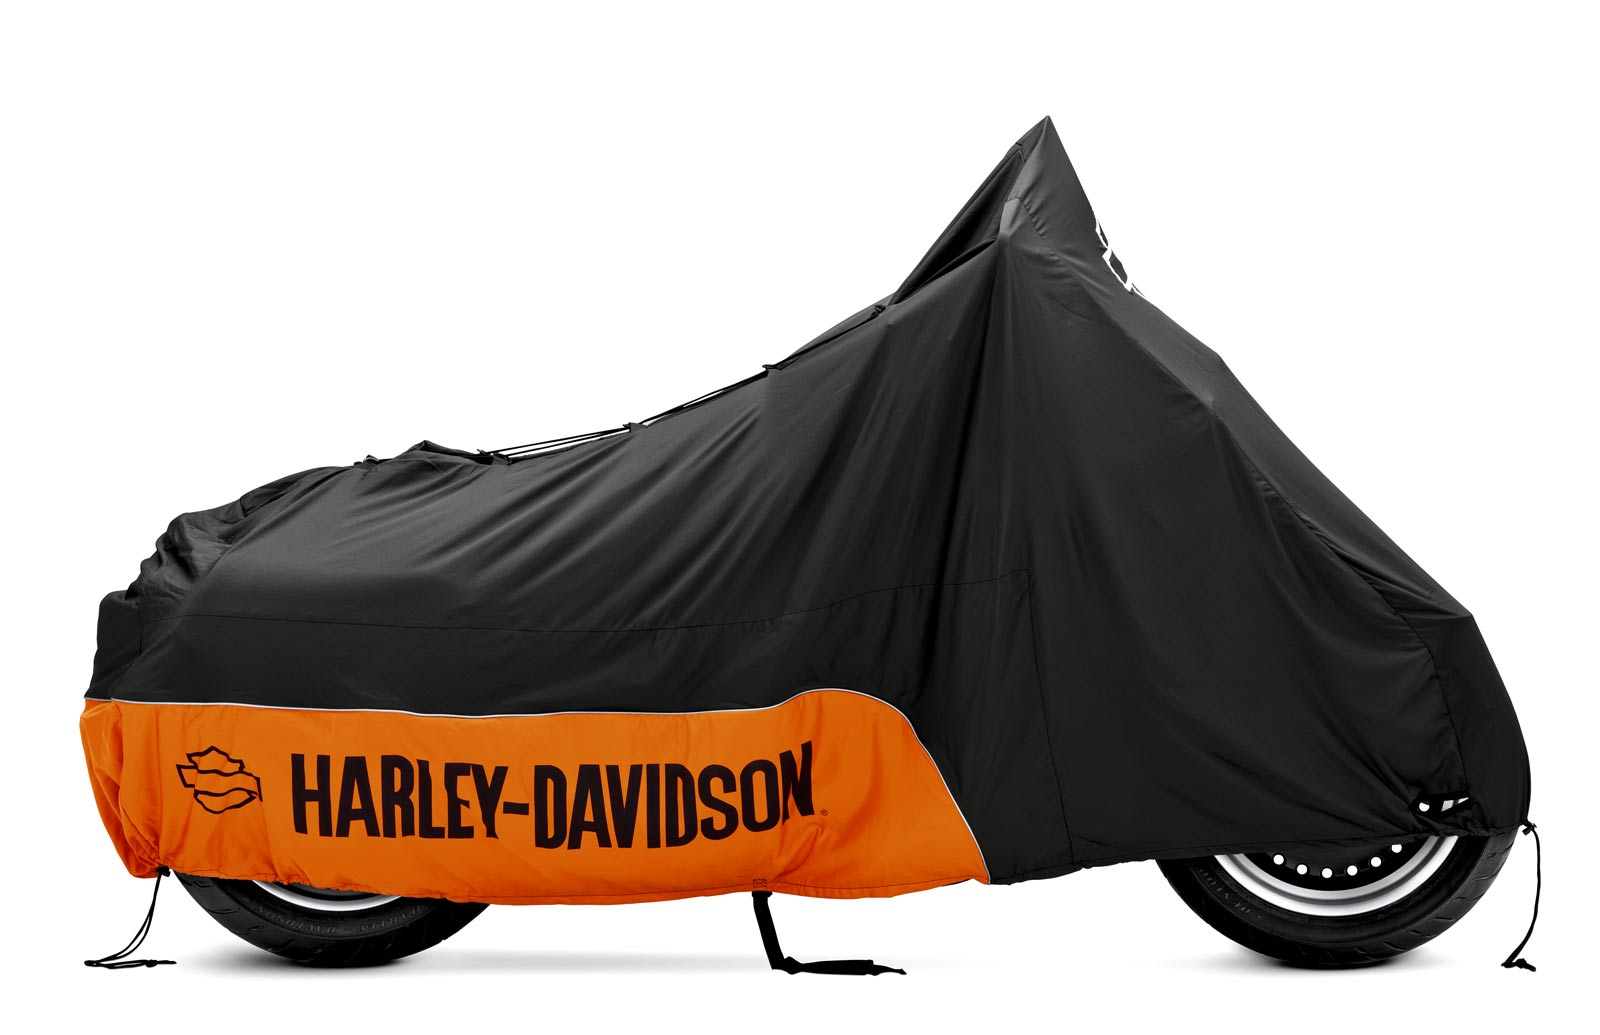 Harley Davidson Cover: 93100019 Harley-Davidson Premium Indoor Motorcycle Cover